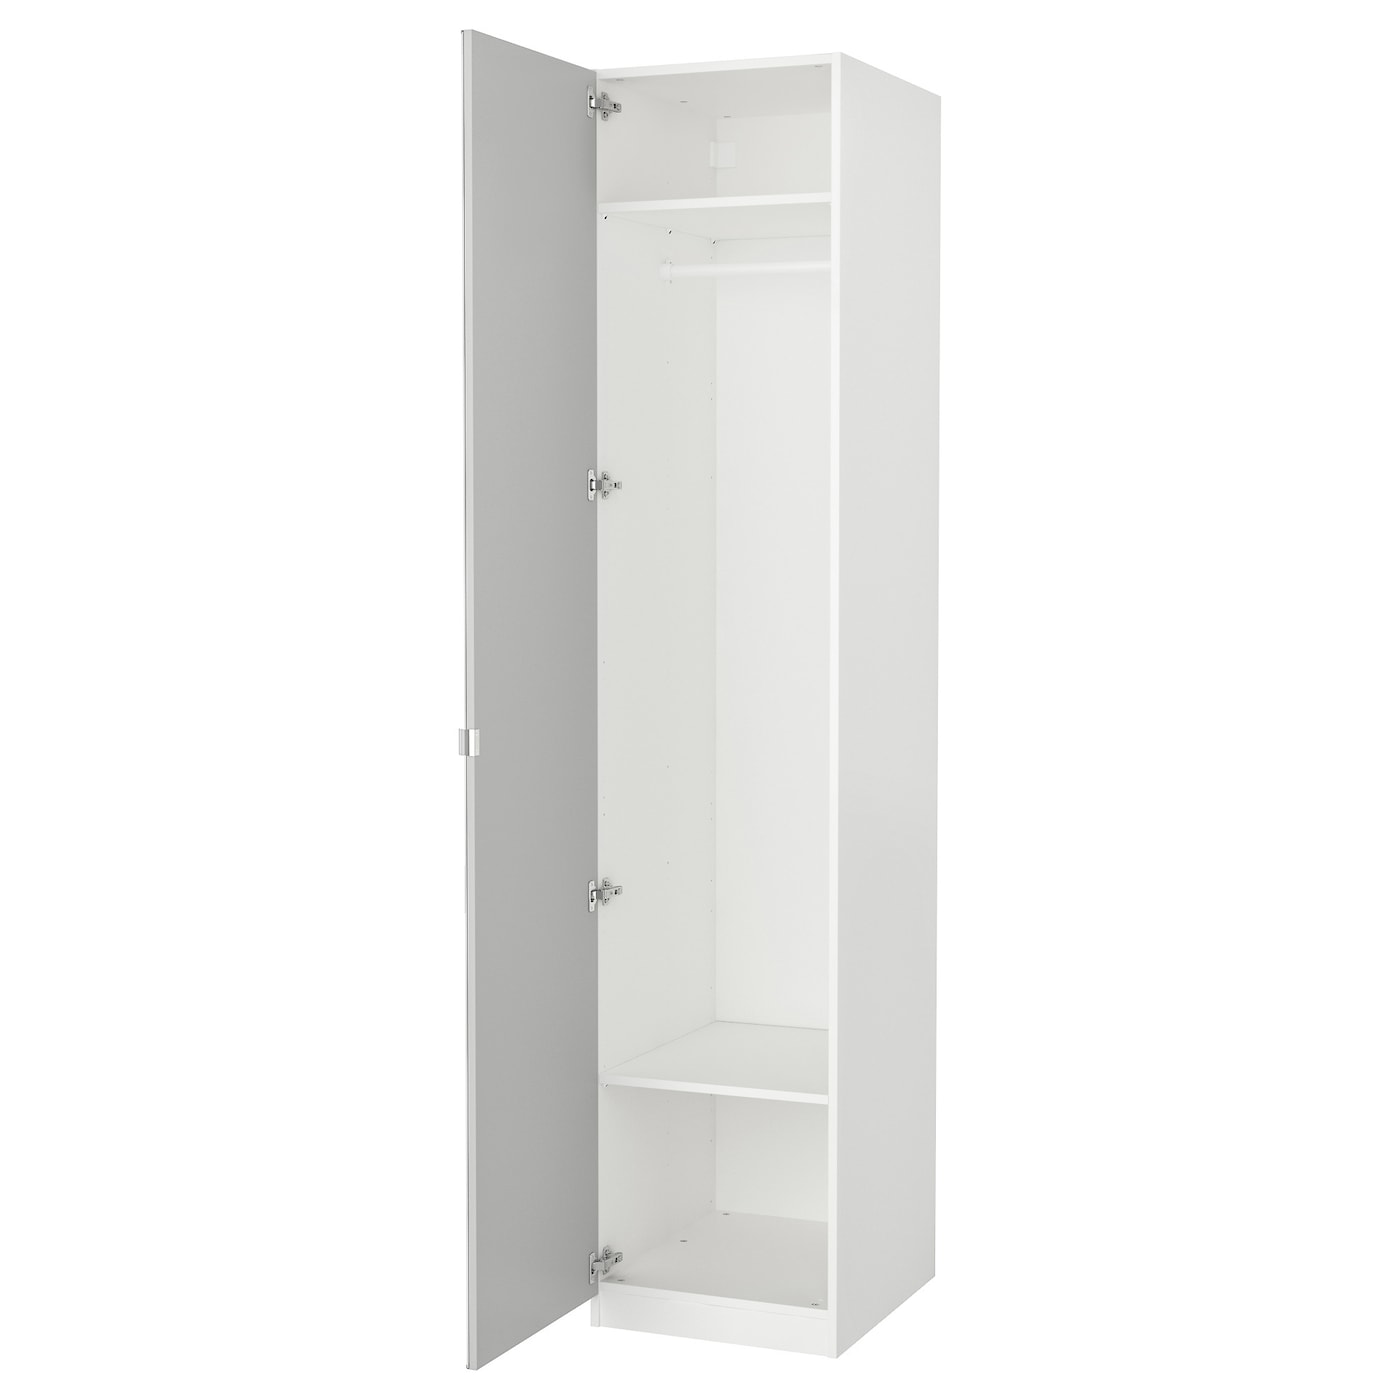 Pax wardrobe white vikedal mirror glass 50 x 60 x 236 cm for Armadio brimnes ikea